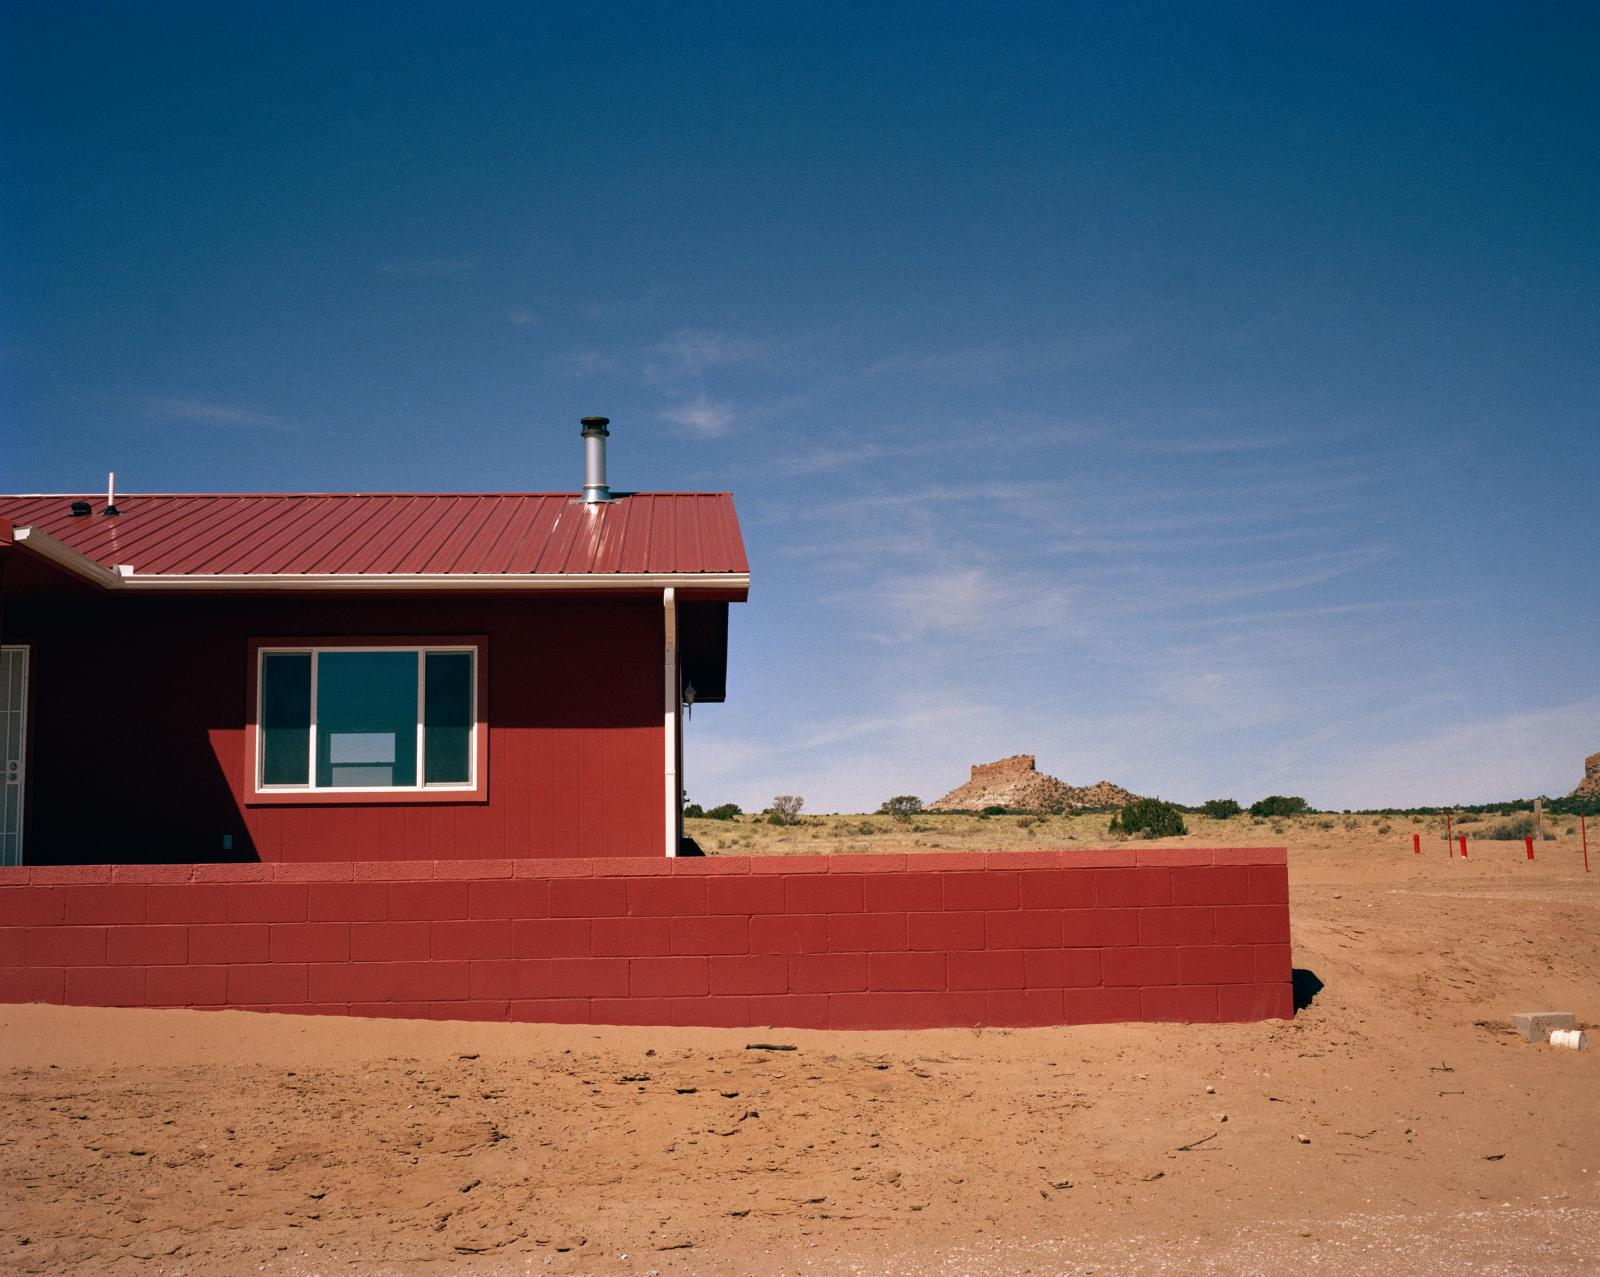 Haystack, New Mexico, USA, April 4, 2016  A new home built to replace a contaminated structure in Haystack. Several structures in Haystack, were built with contaminated materials from abandoned uranium mines, presenting critical health risks for residents, From 1950 through 1980's uranium was mined across 27,000 square miles in New Mexico, Arizona and Utah to provide material for the US nuclear weapons program. Many Navajo worked in the mines and ended up dying of lung cancer, kidney failure and other cancers. Uranium has been found in the urine of Navajo children today.